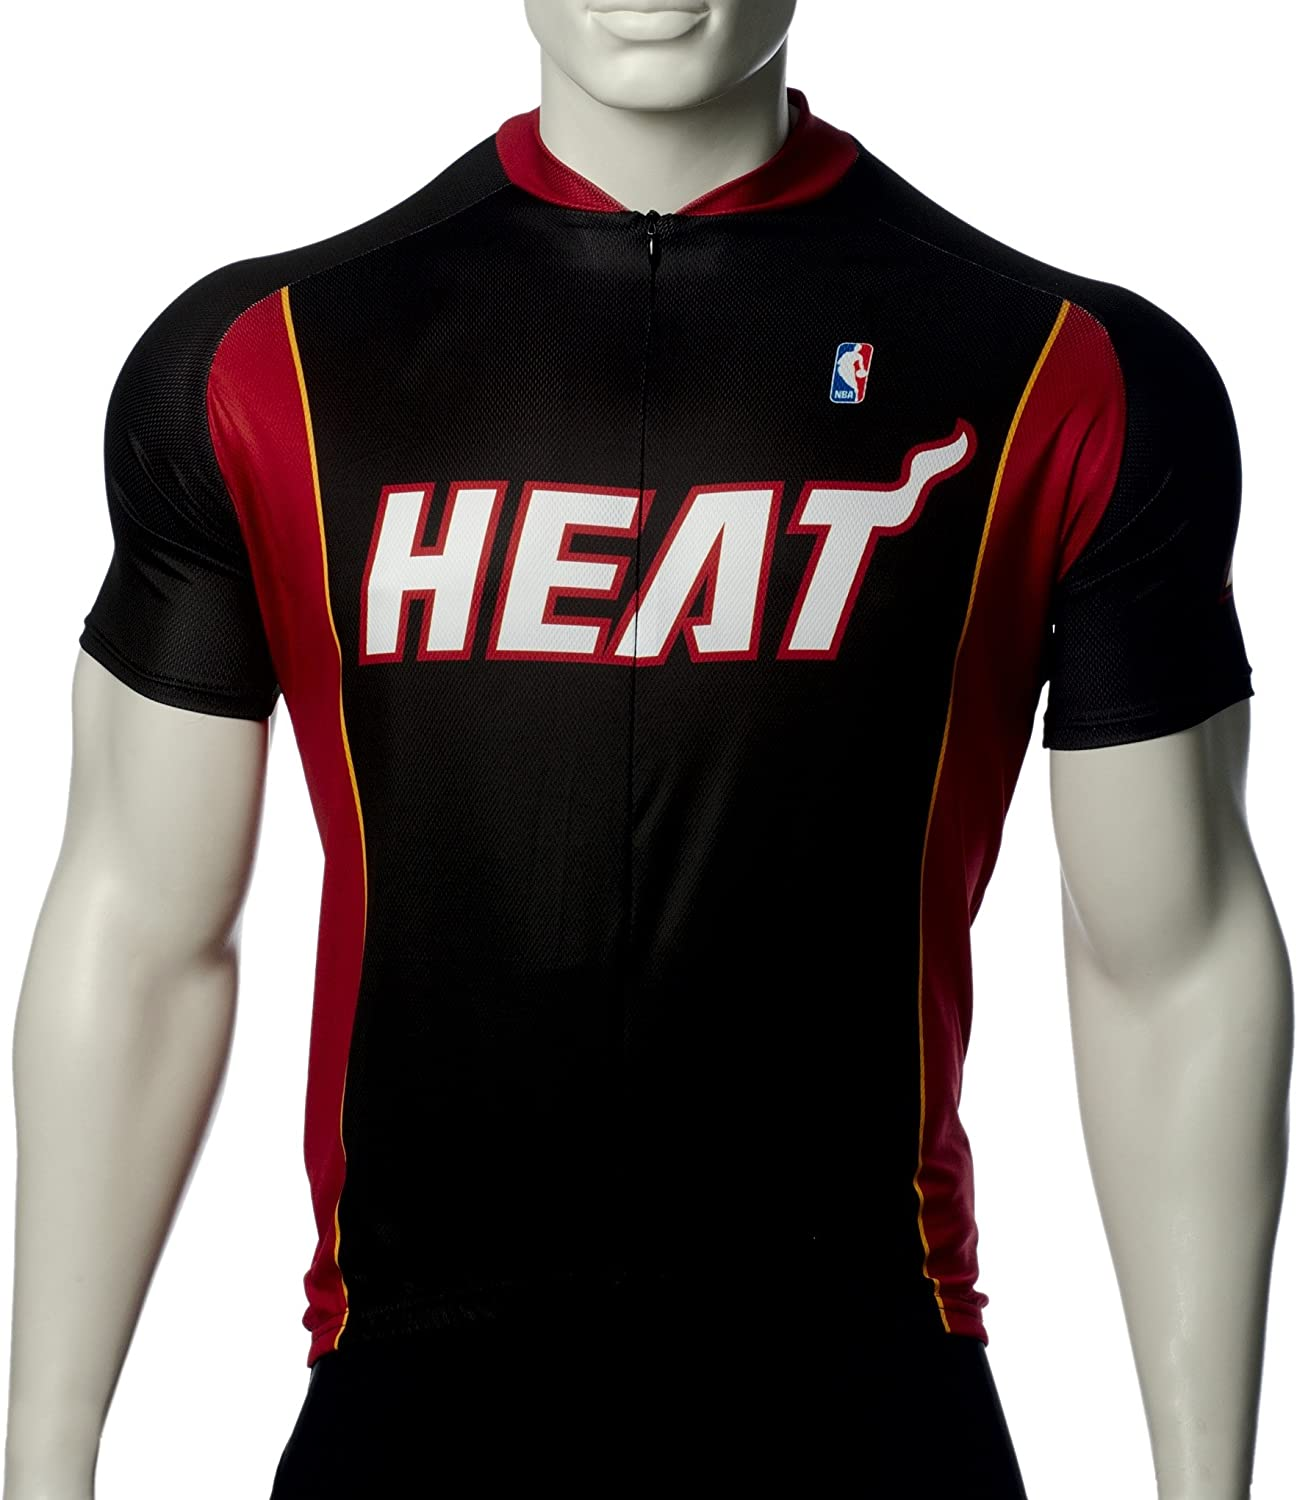 NBA Miami Heat Cycling Jersey Limited Special Price Wholesale Men's